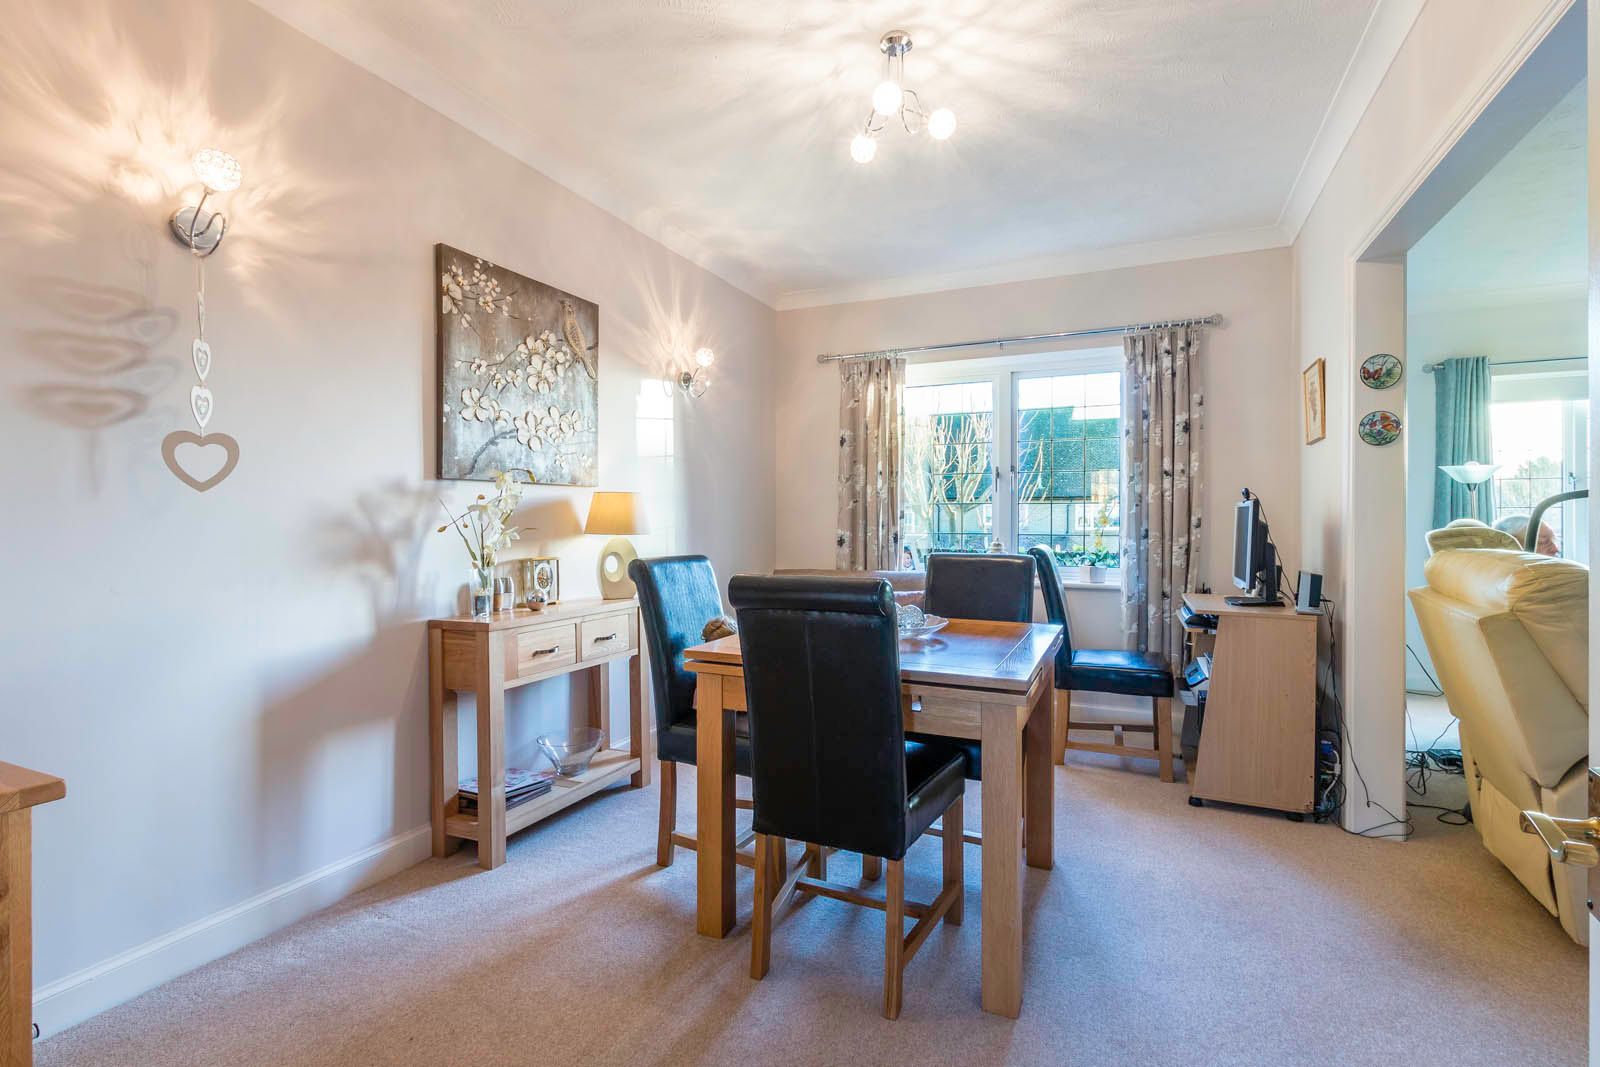 2 bed  for sale in Midholme  - Property Image 4